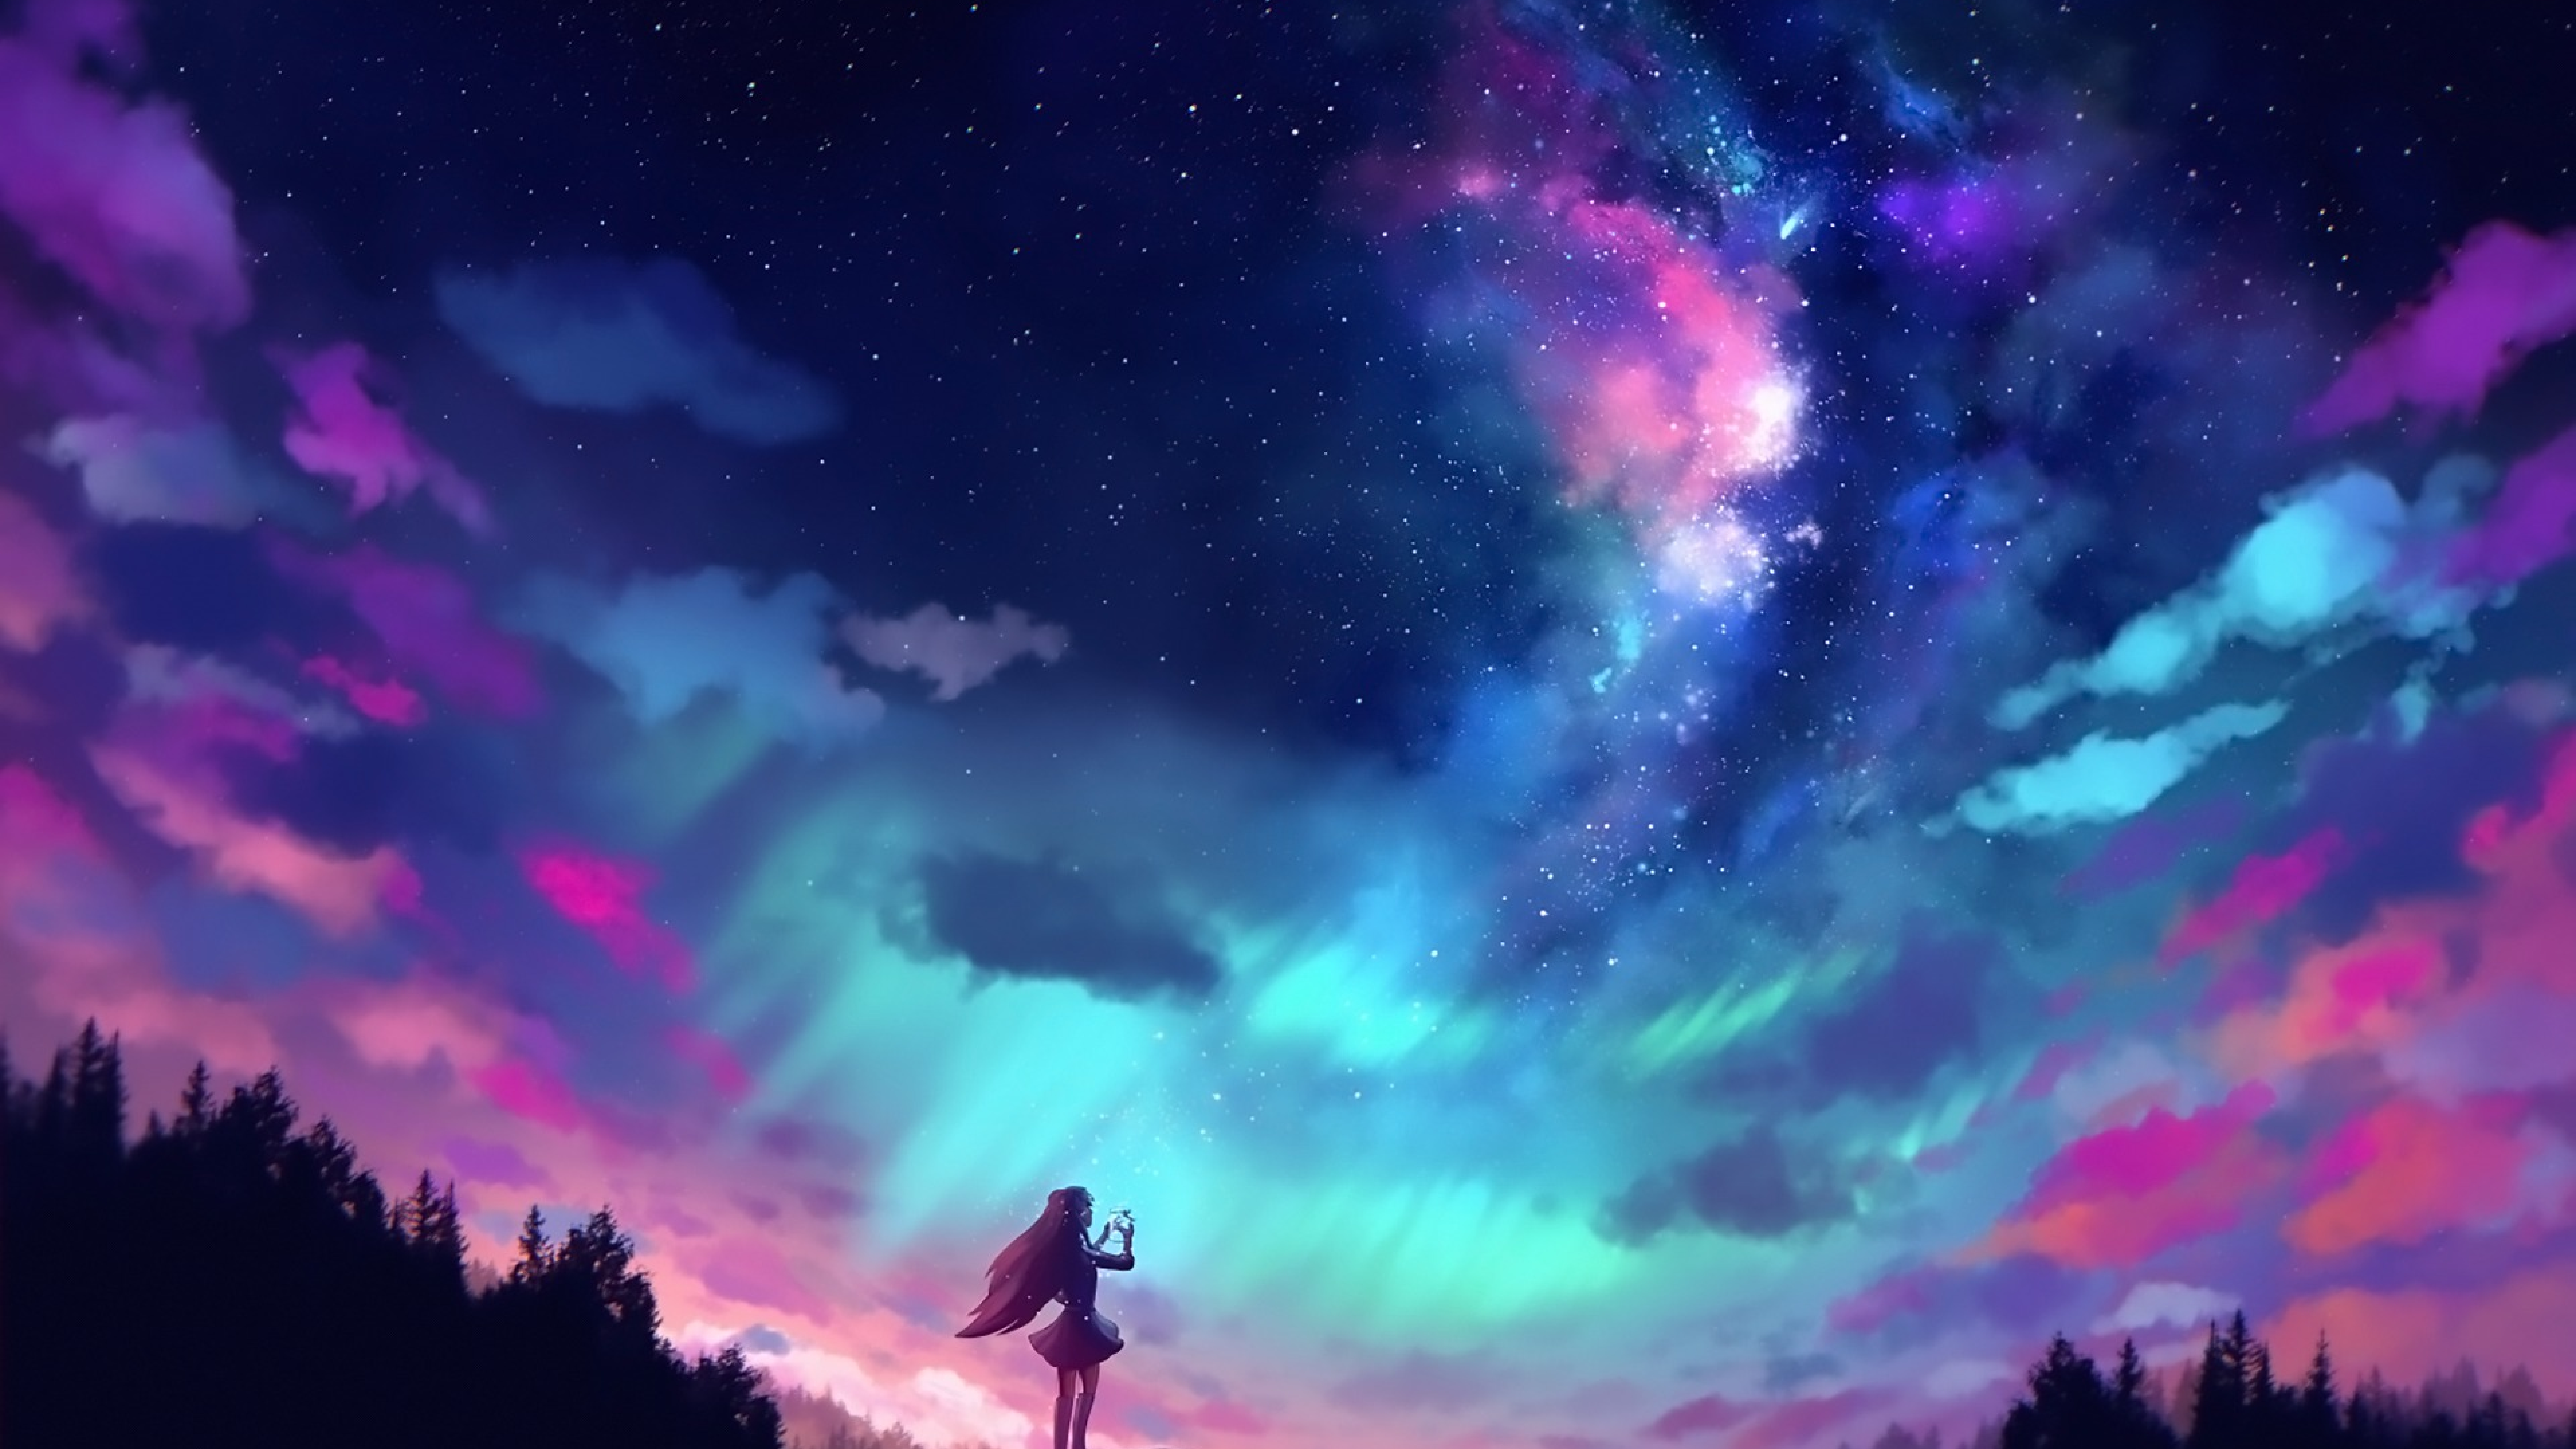 Anime girl and colorful sky full hd wallpaper - Anime sky background ...